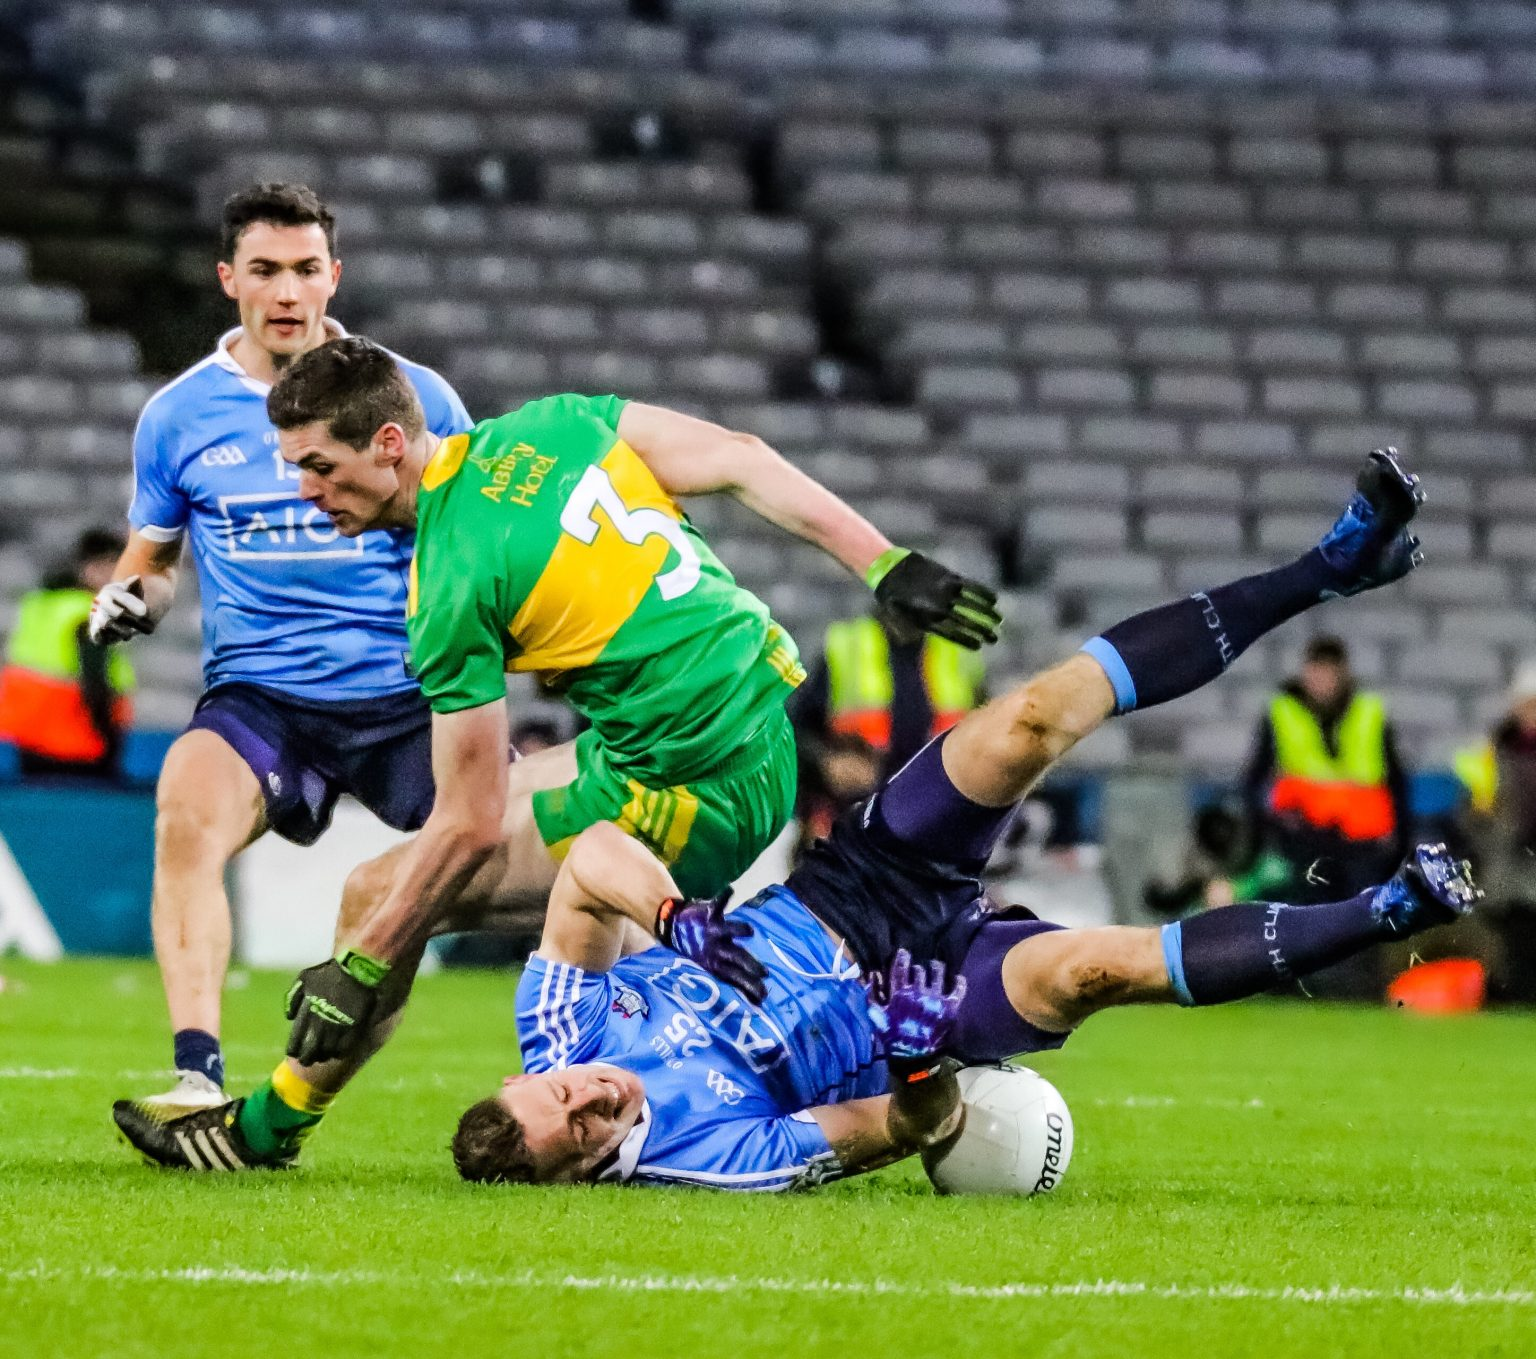 DUBLIN FINISHES STRONGLY TO SEE OFF DONEGAL FOR THIRD STRAIGHT LEAGUE VICTORY